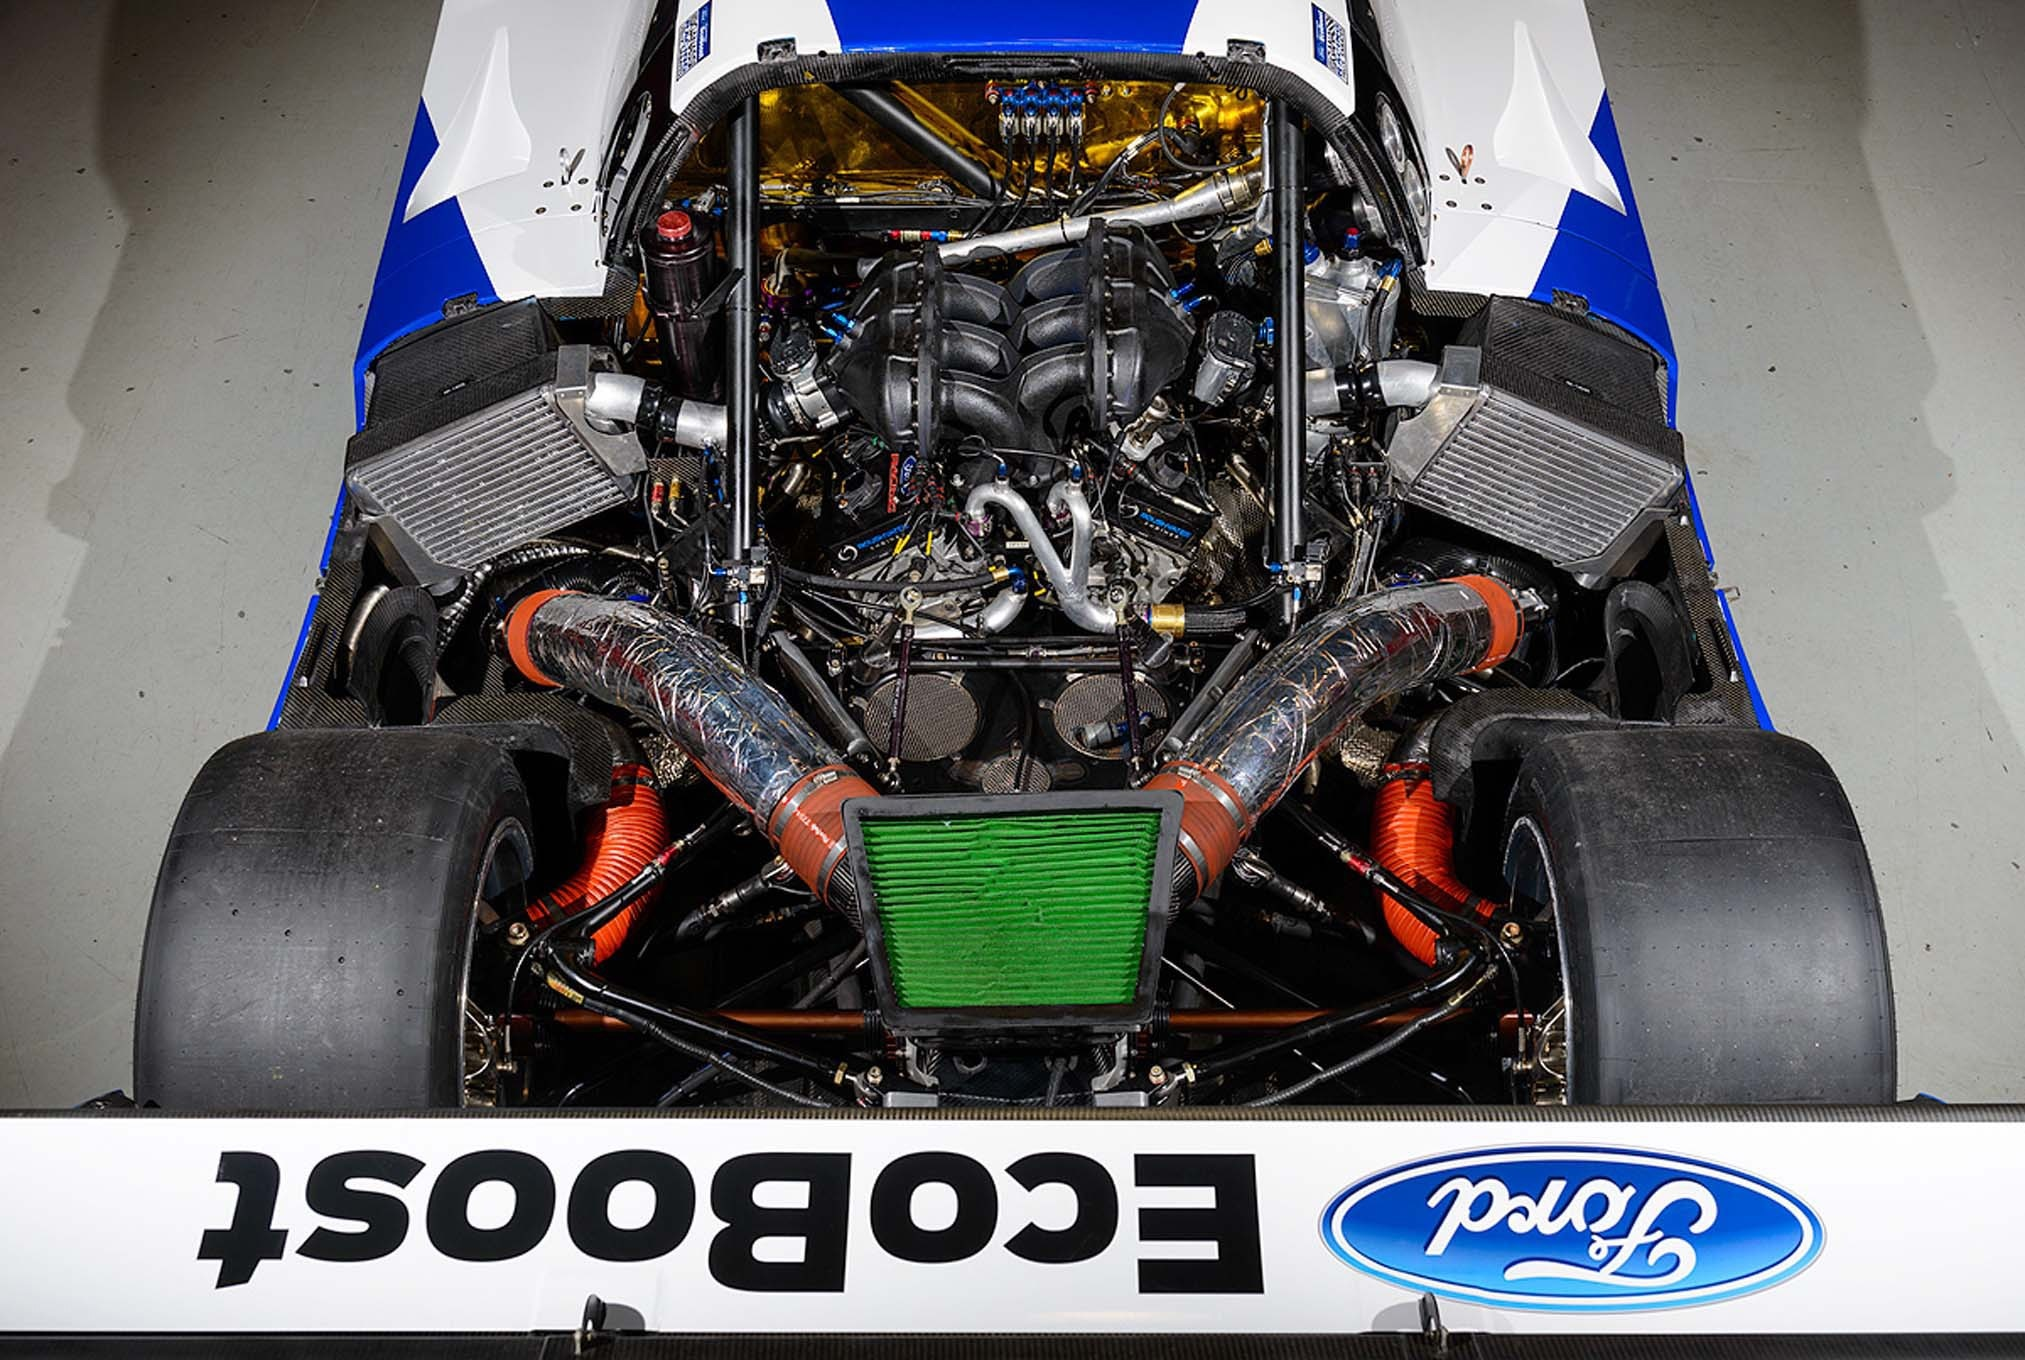 Ford Ecoboost 3 5L Twin-Turbo V6 is Capable of 800+hp—Exclusive Look